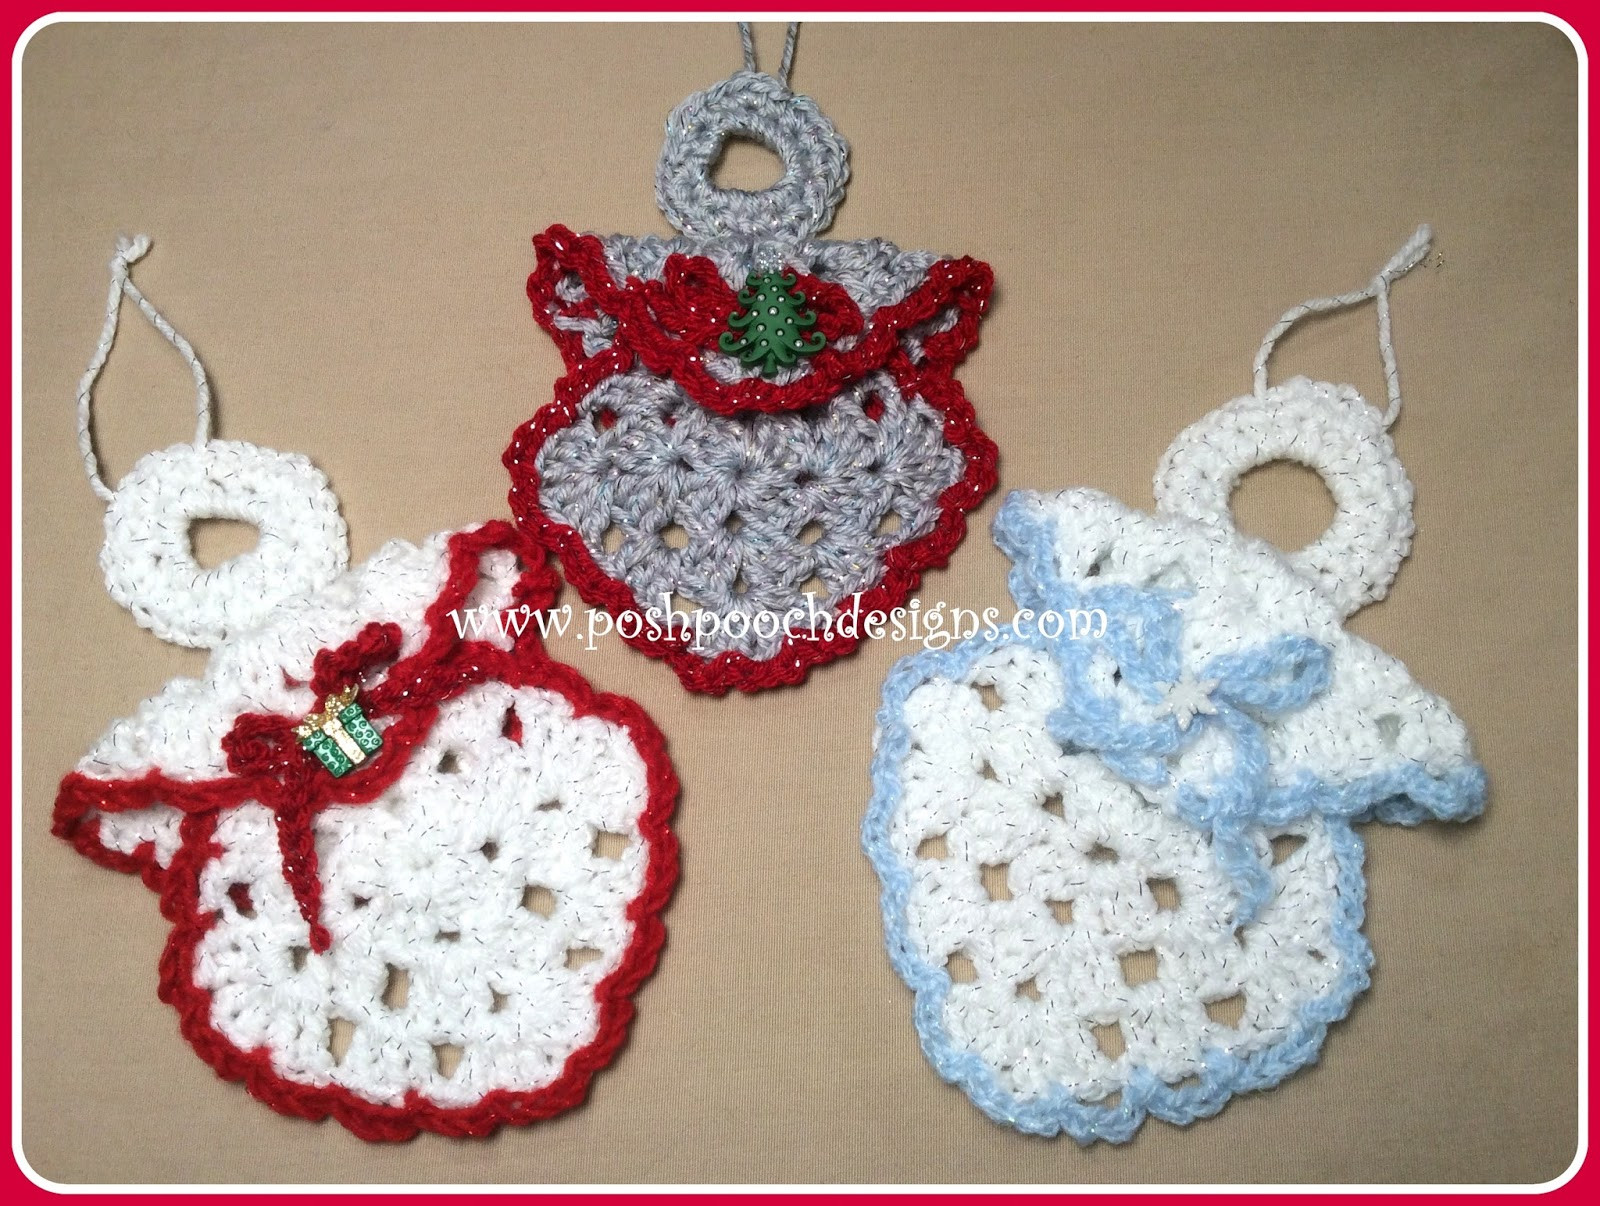 Awesome Posh Pooch Designs Dog Clothes Granny Square Angel Crochet ornament Patterns Of Beautiful 40 Pictures Crochet ornament Patterns